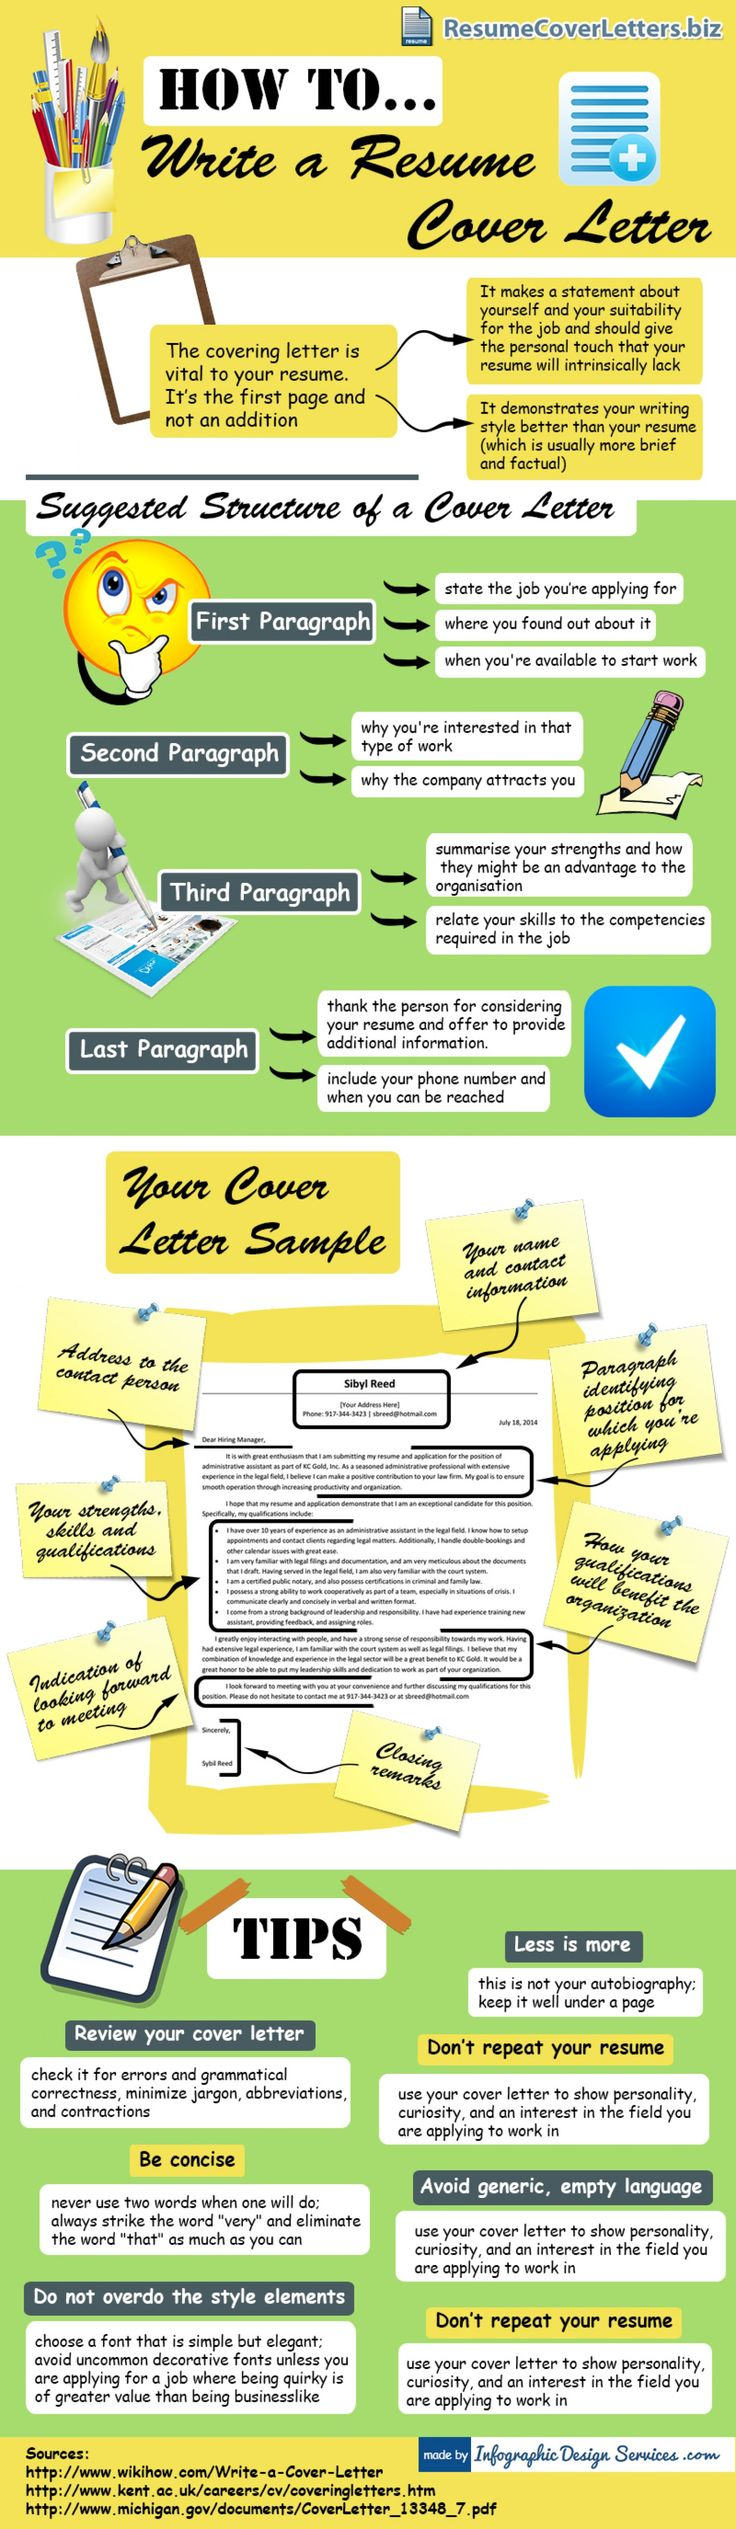 best 10 resume tips ideas on pinterest resume ideas resume